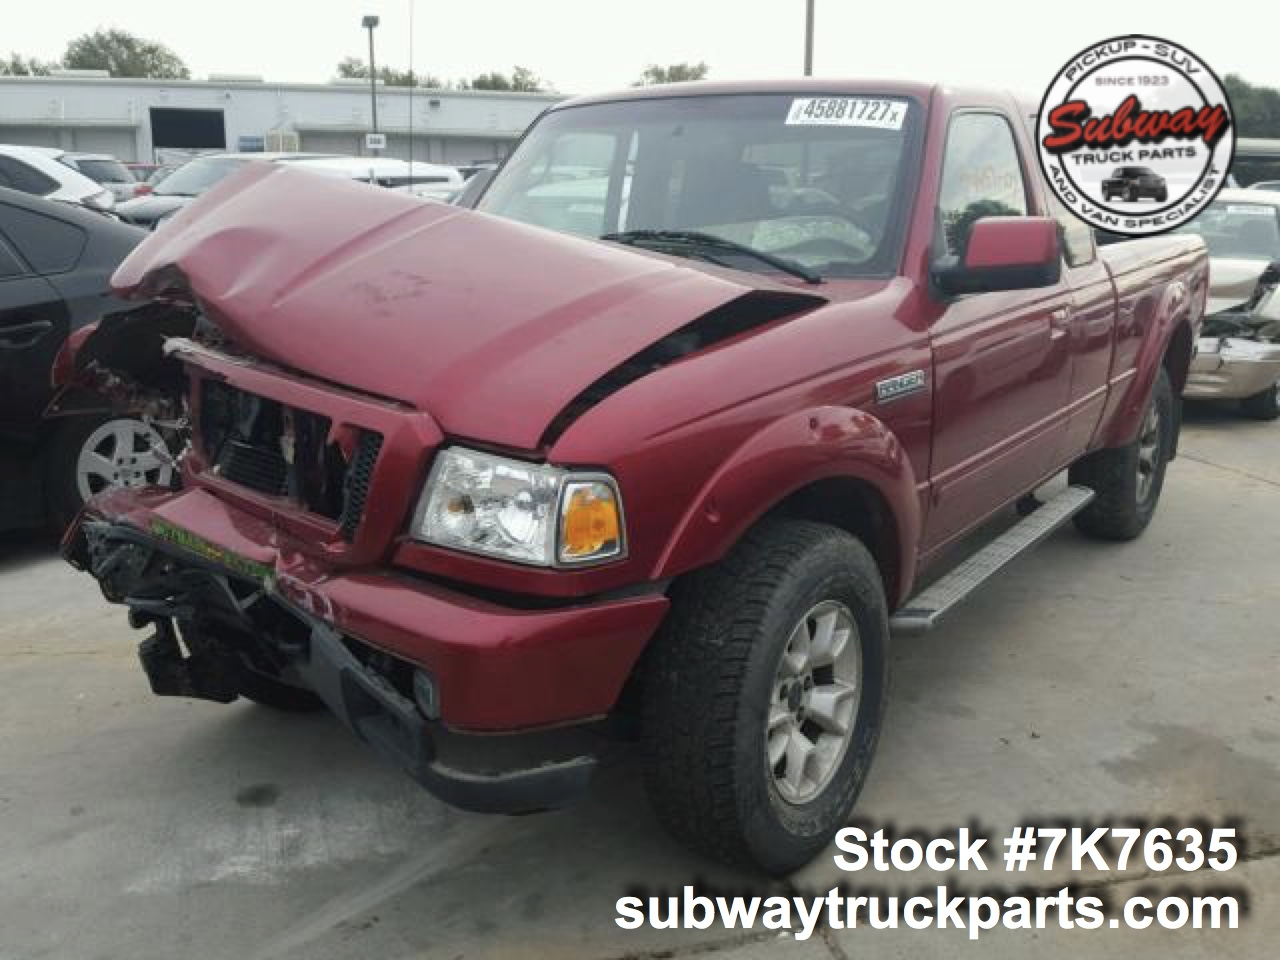 Used 2007 Ford Ranger Parts Sacramento Subway Truck Parts